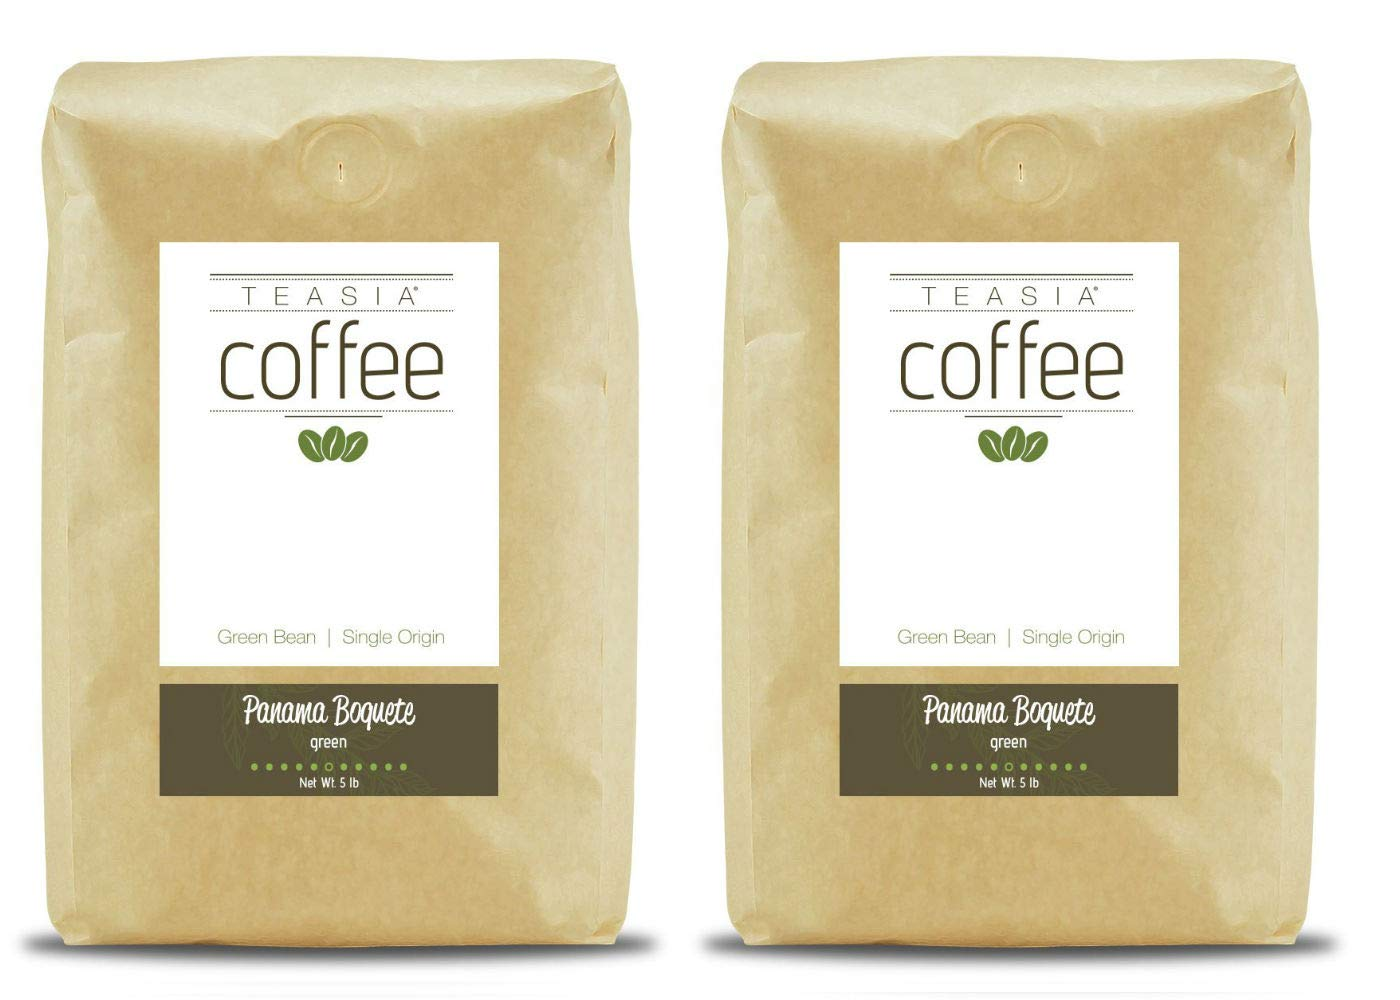 Teasia Coffee, Panama Boquete, 2-Pack, Single Origin, Green Unroasted Whole Coffee Beans, 5-Pound Bag